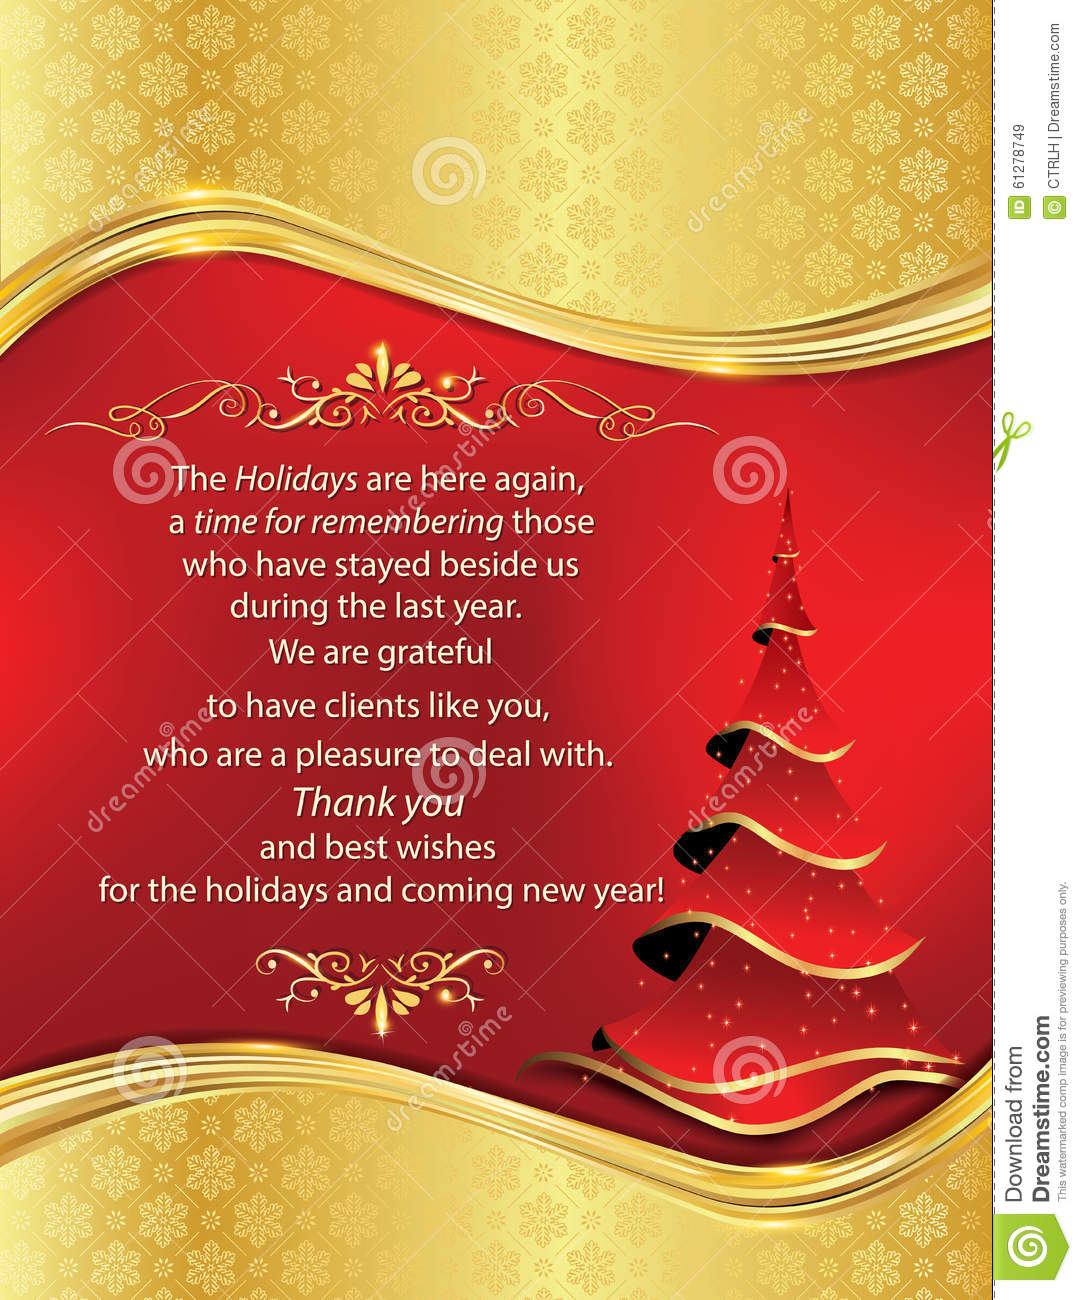 Thank you new year business greeting card stock vector thank you new year business greeting card computer elegance kristyandbryce Image collections